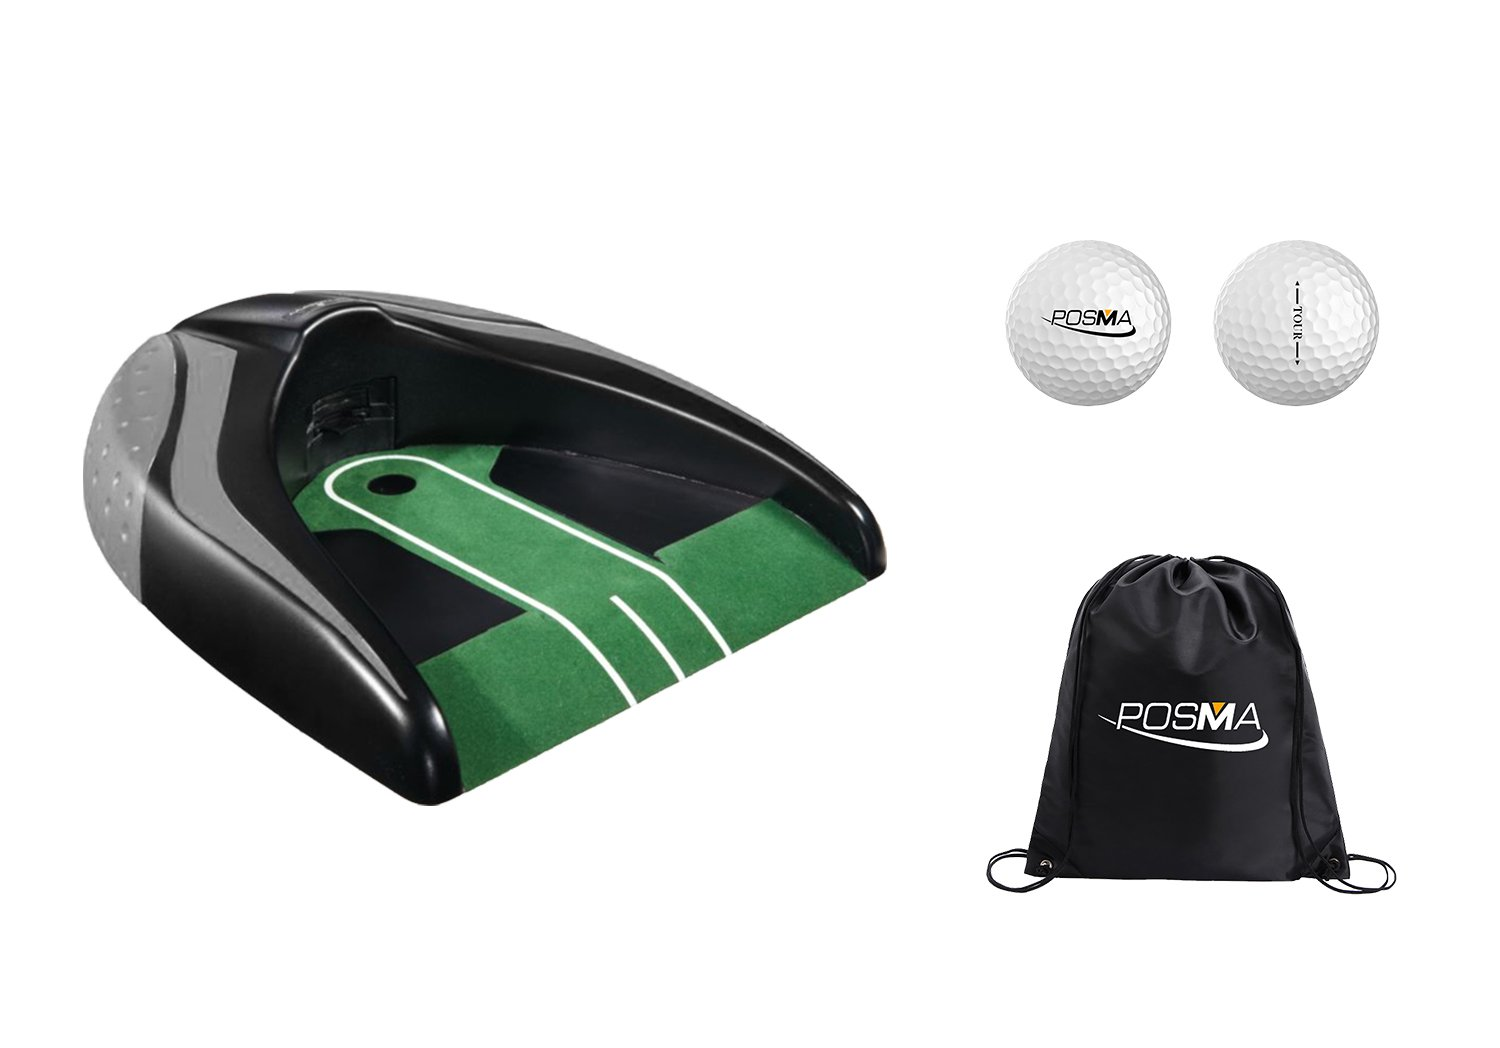 POSMA PG140BK-A Golf Kickback Putt Cup Gift Set Auto Return Putting Cup Golf Putter Trainer